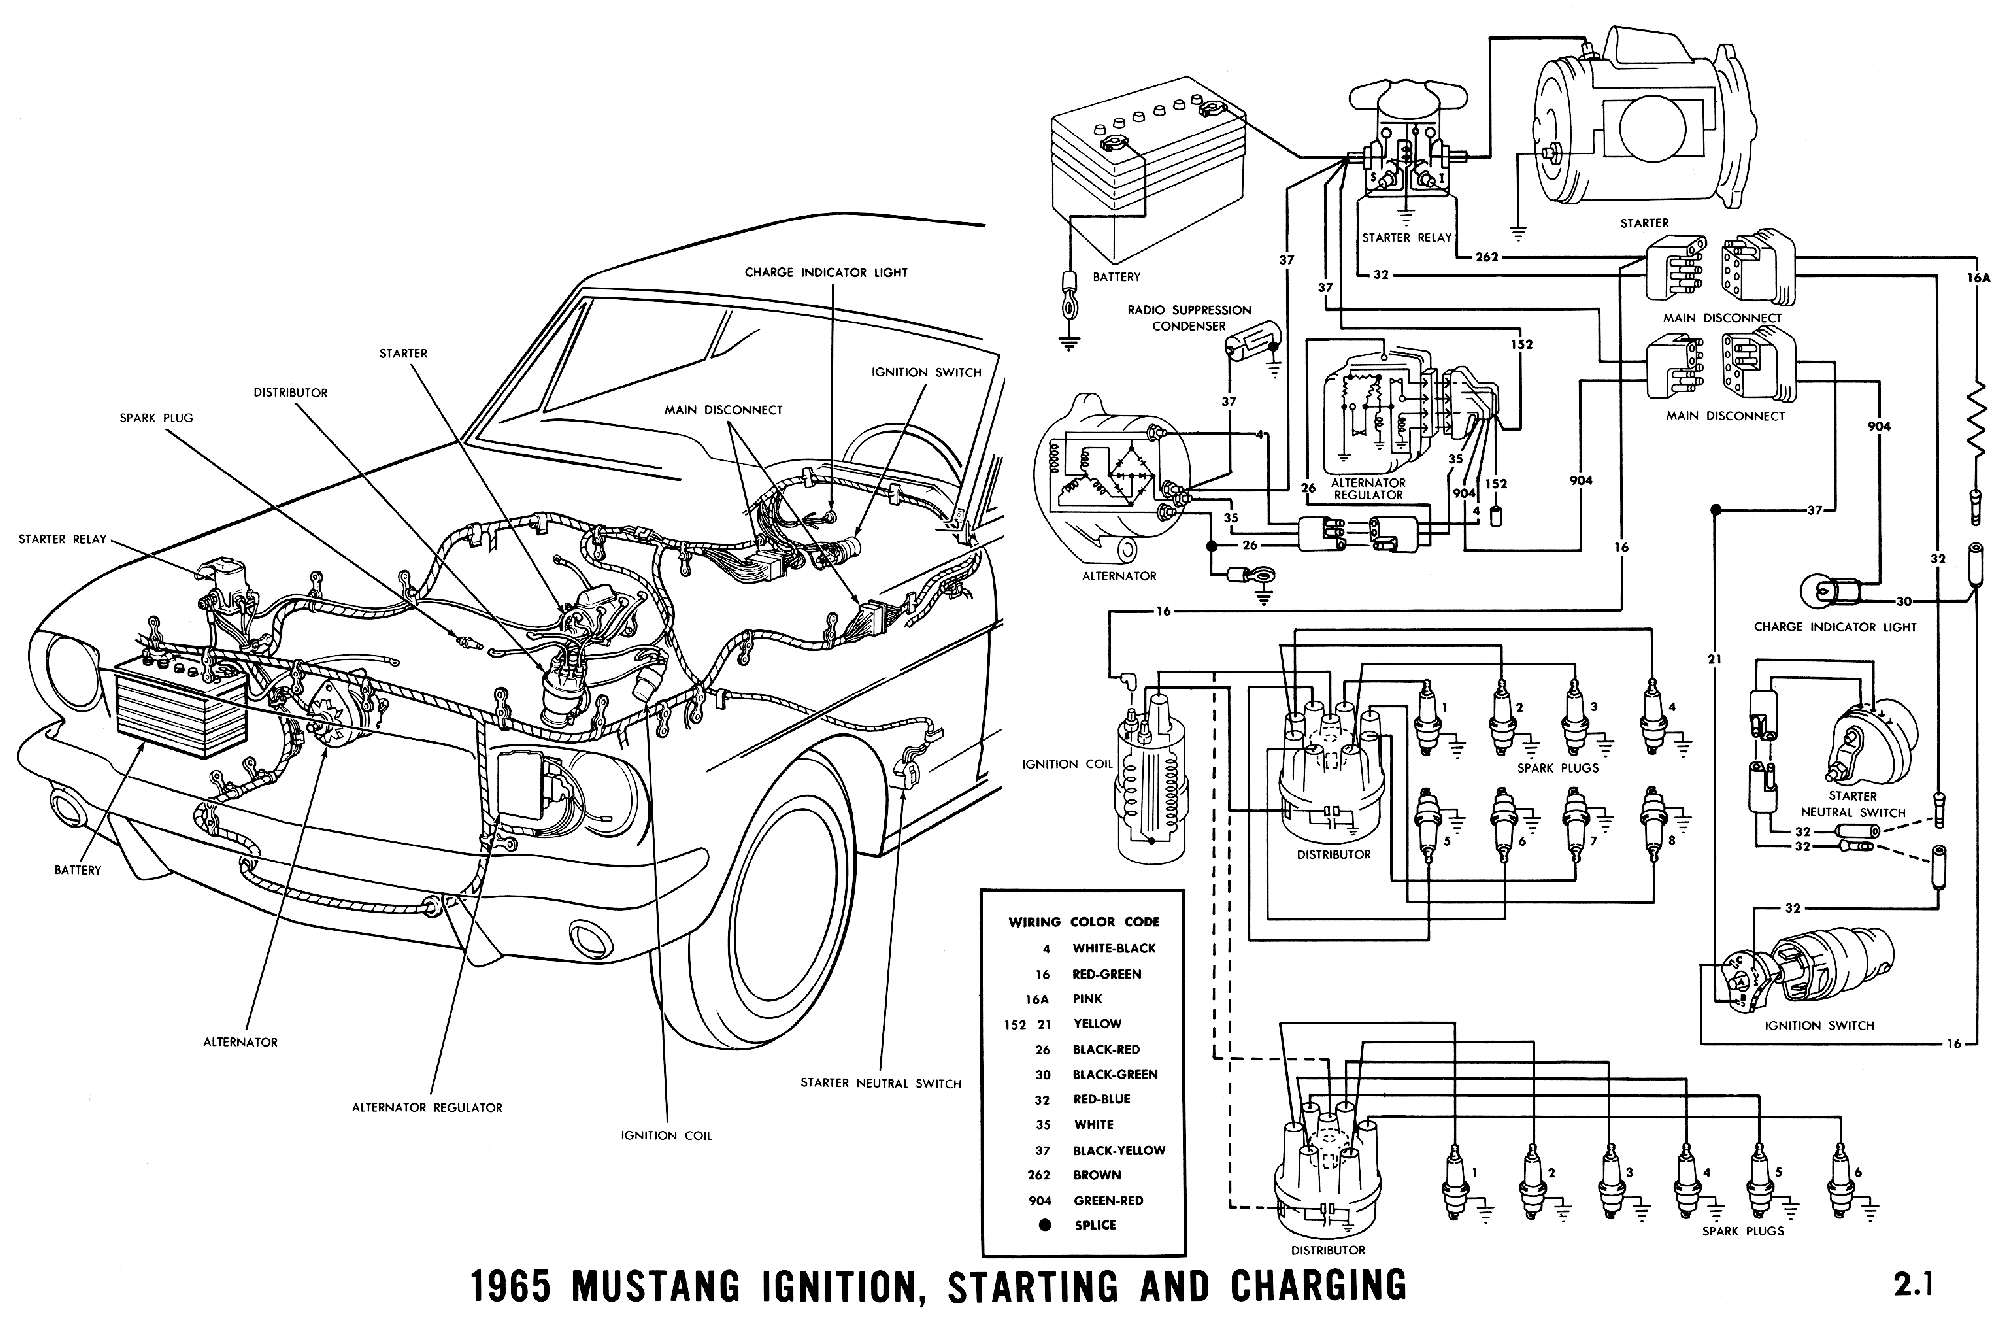 65 Fairlane Wiring Diagram Modern Design Of 63 1966 Mustang 289 Simple Rh Mara Cujas De 67 62